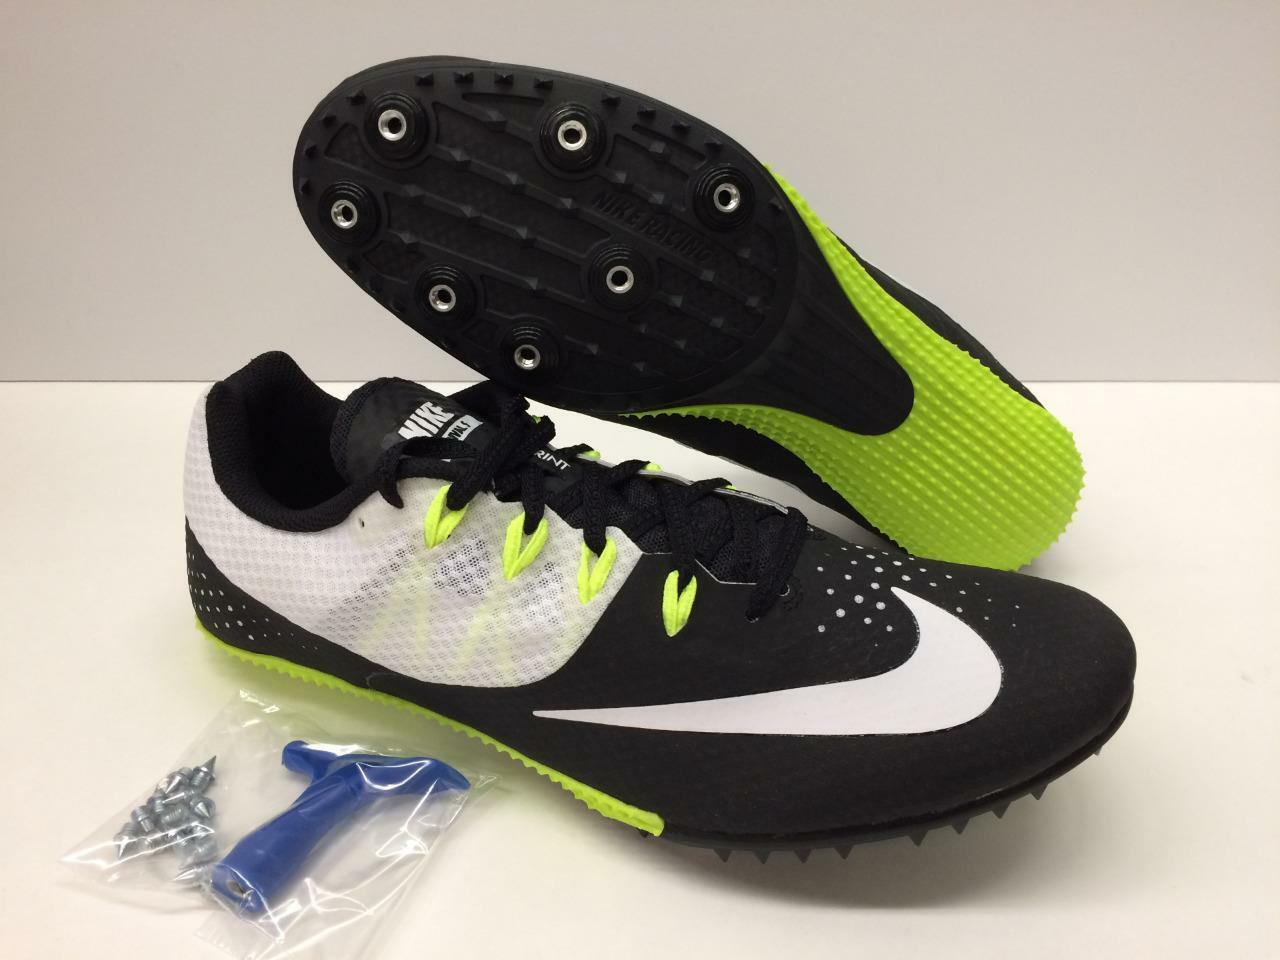 save off 6aeba 16cea ... Nike ZOOM ZOOM ZOOM Rival S 8 Sprint Race Jump Running Track Spikes  Shoes + Wrench ...